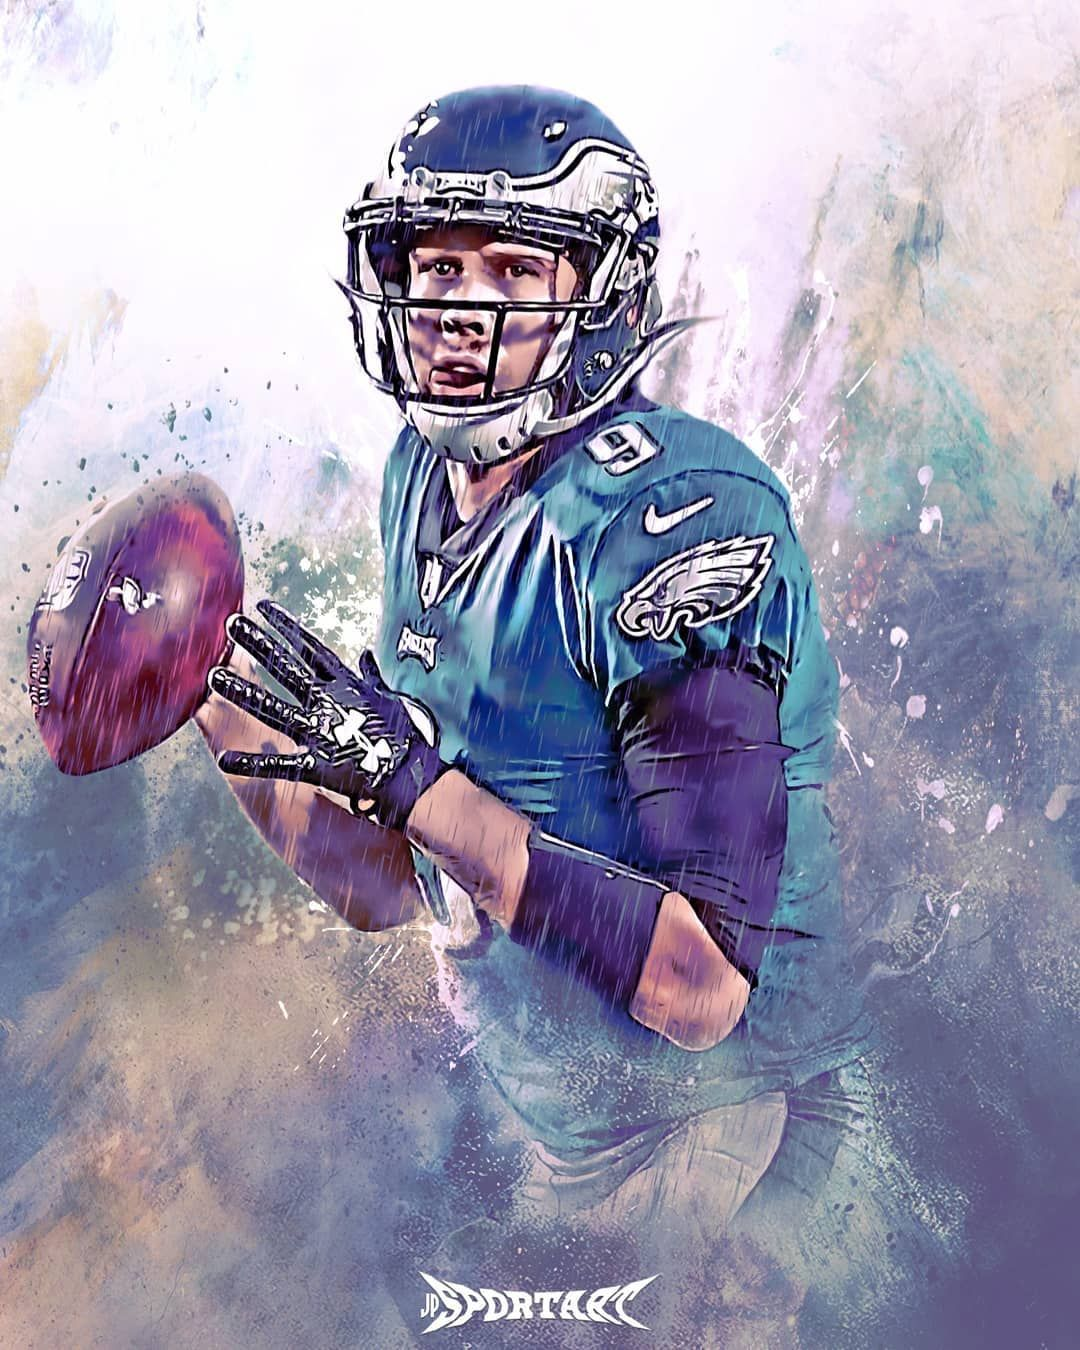 Nick Foles Mvp Philadelphia Philadelphiaeagles Eagles Patriots Nfl Philly Flyeaglesfly Superbowl Mv Eagles Football Philly Eagles Philadelphia Eagles